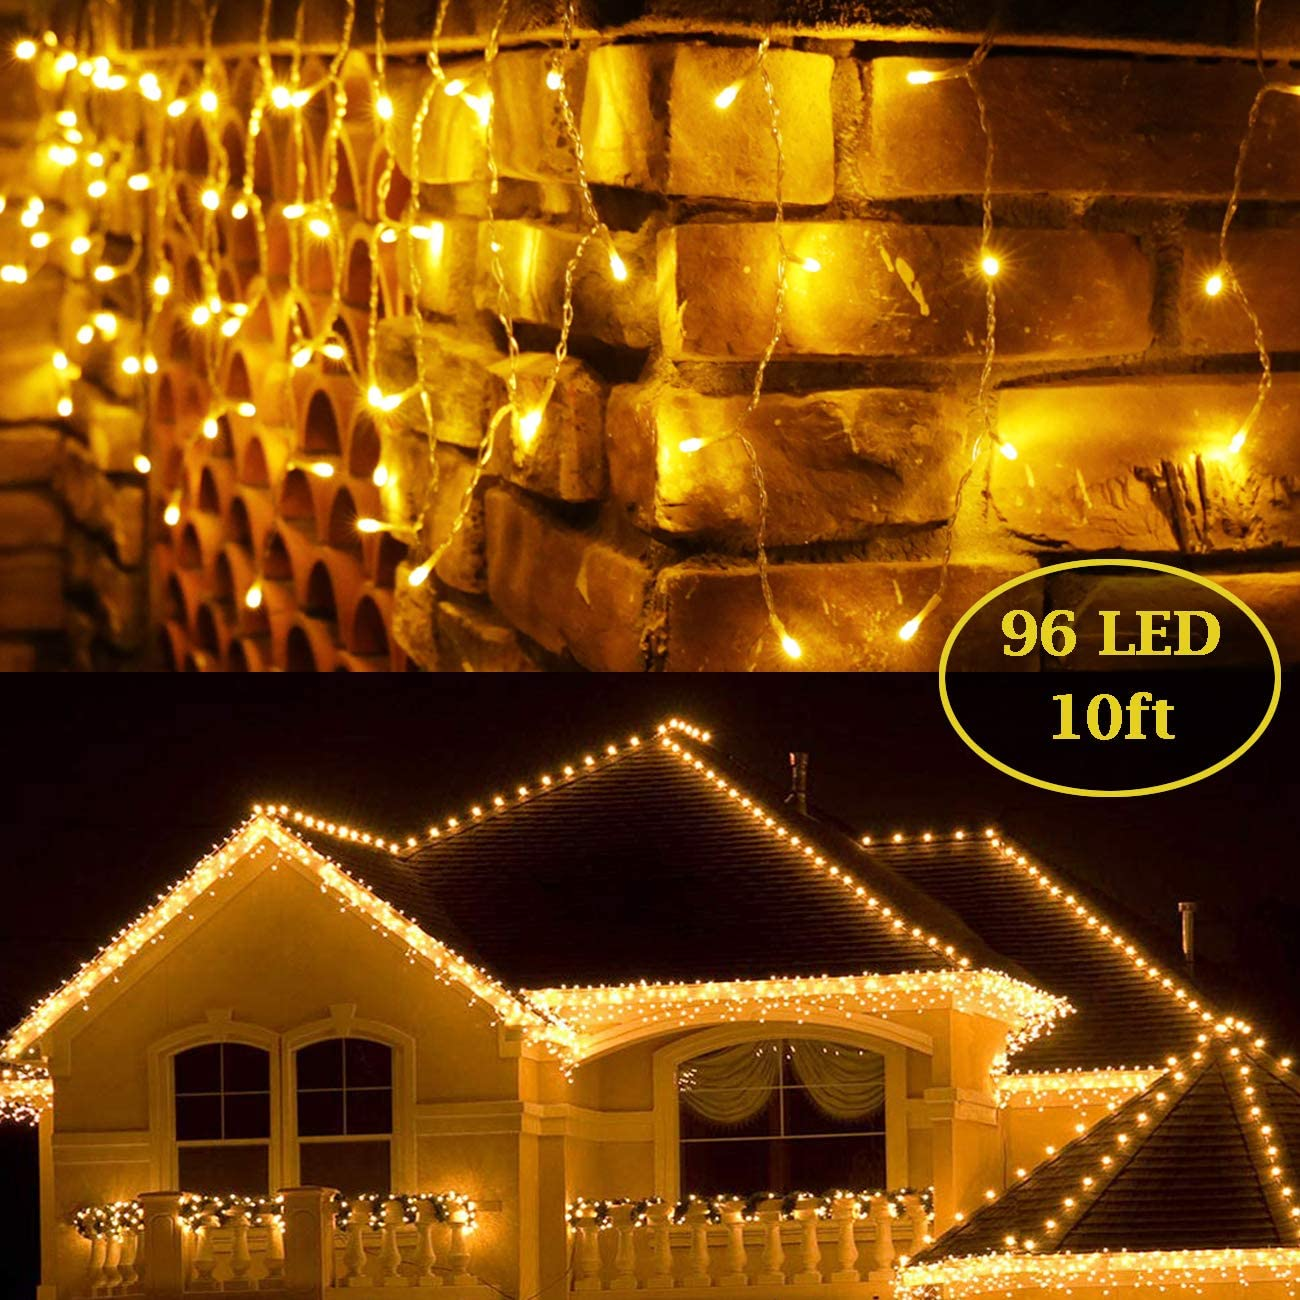 BaiYunPOY 10 Ft 96 Led Icicle Lights, Christmas Lights Plug in Outdoor Fairy String Lights with 16.6 FT Power Lead for Bedroom Indoor and Holiday Icicle Lights